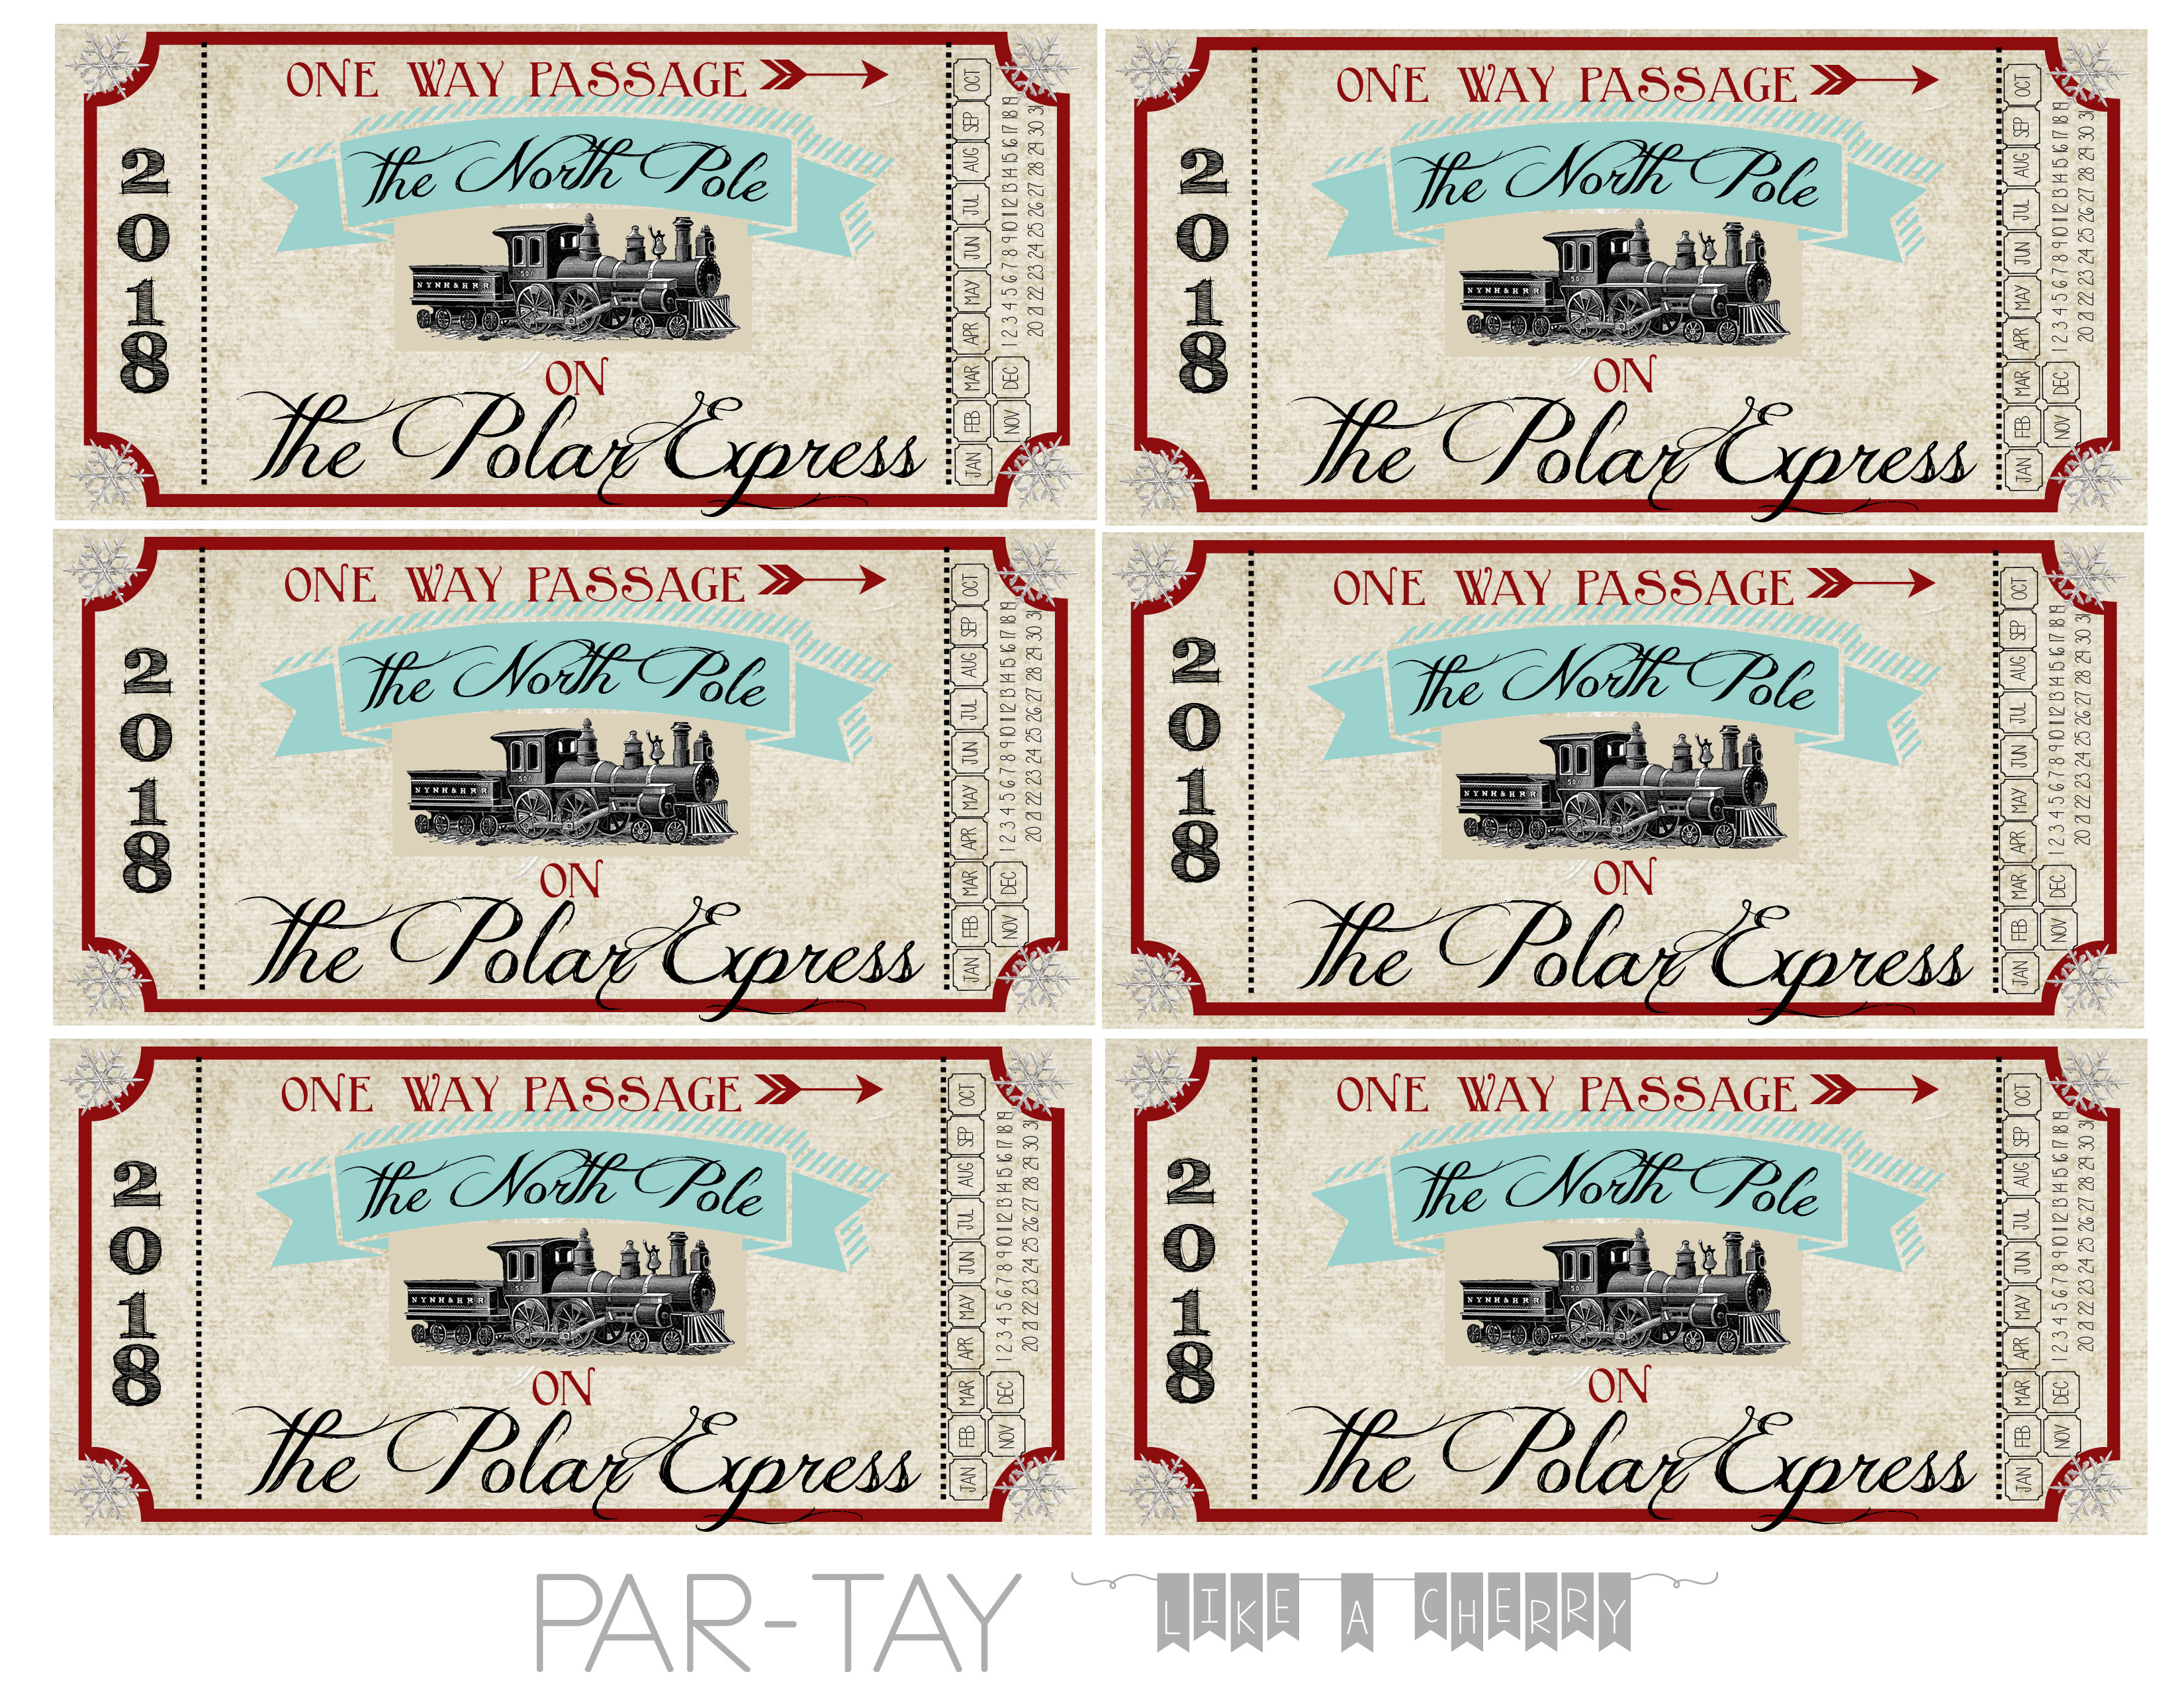 Polar Express Train Tickets Free Printable - Party Like A Cherry - Free Polar Express Printable Tickets